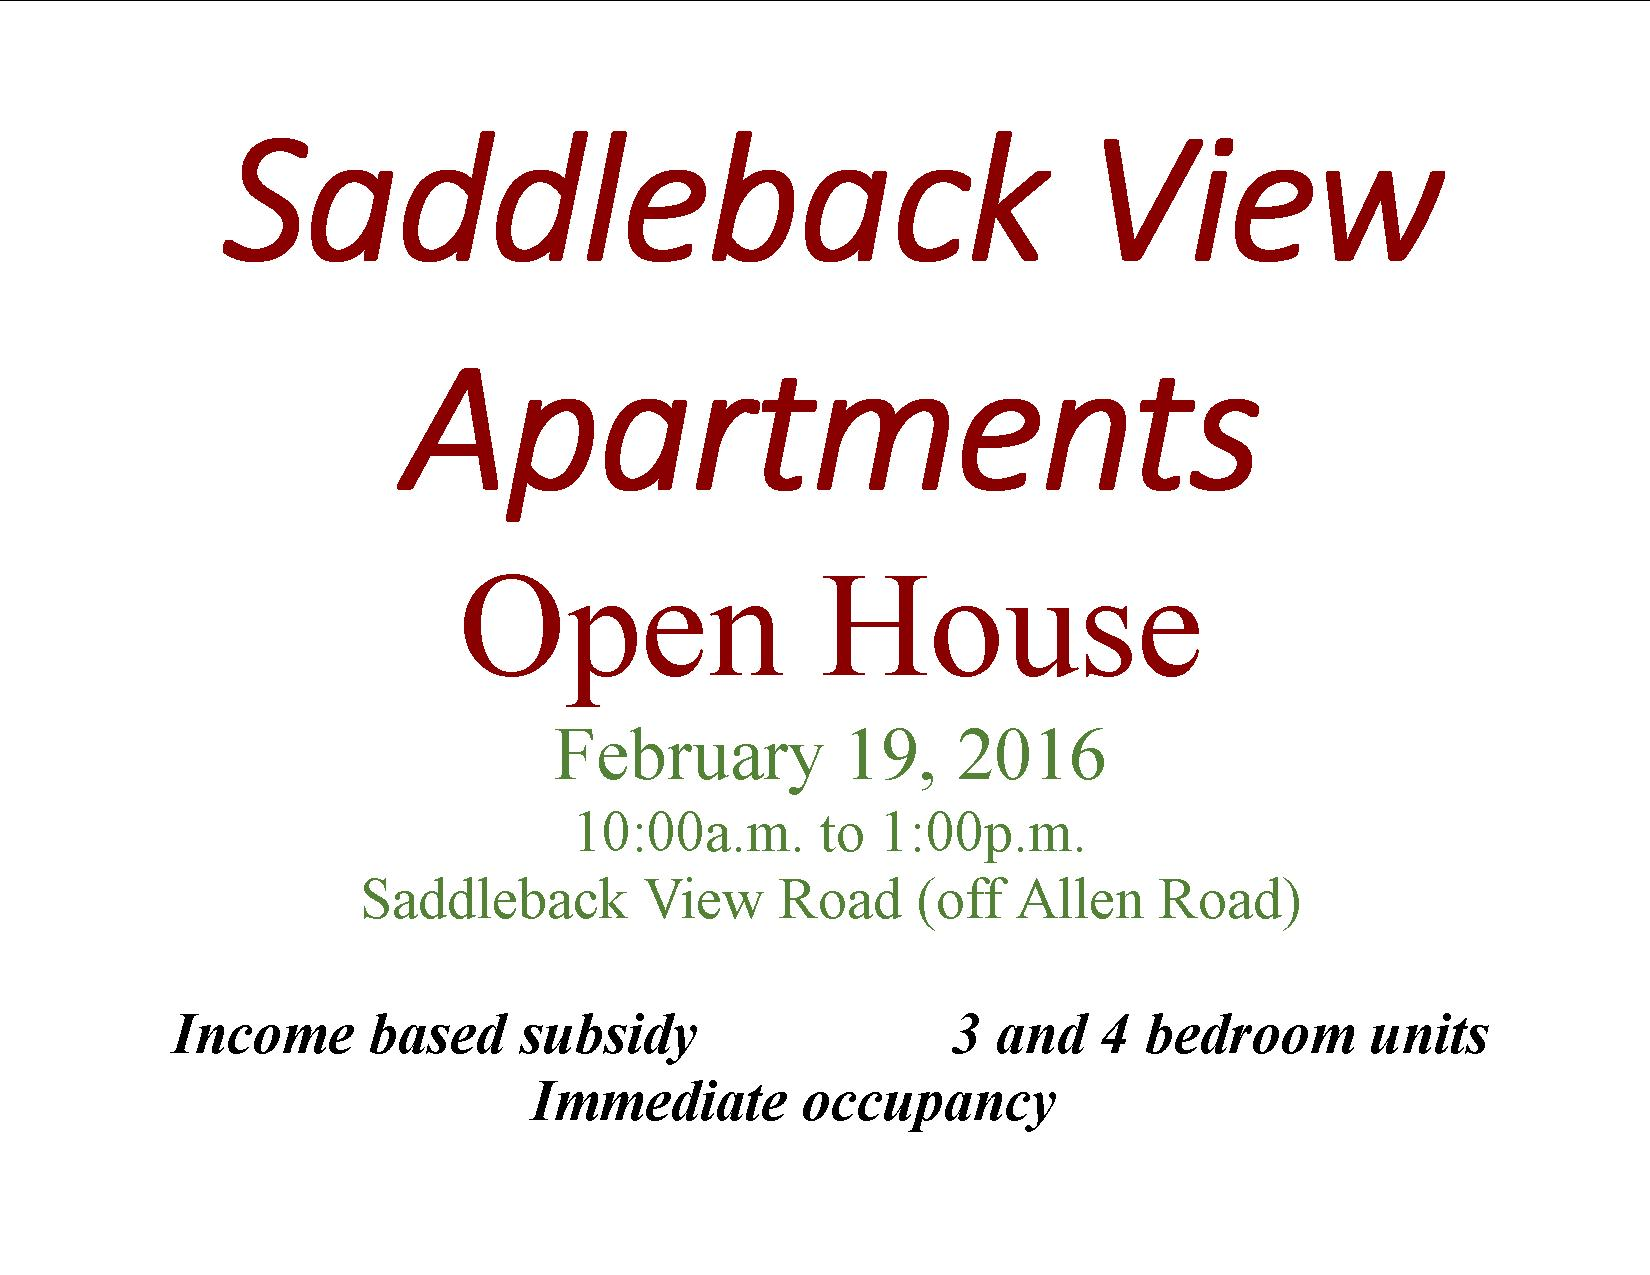 Saddleback View Apartments